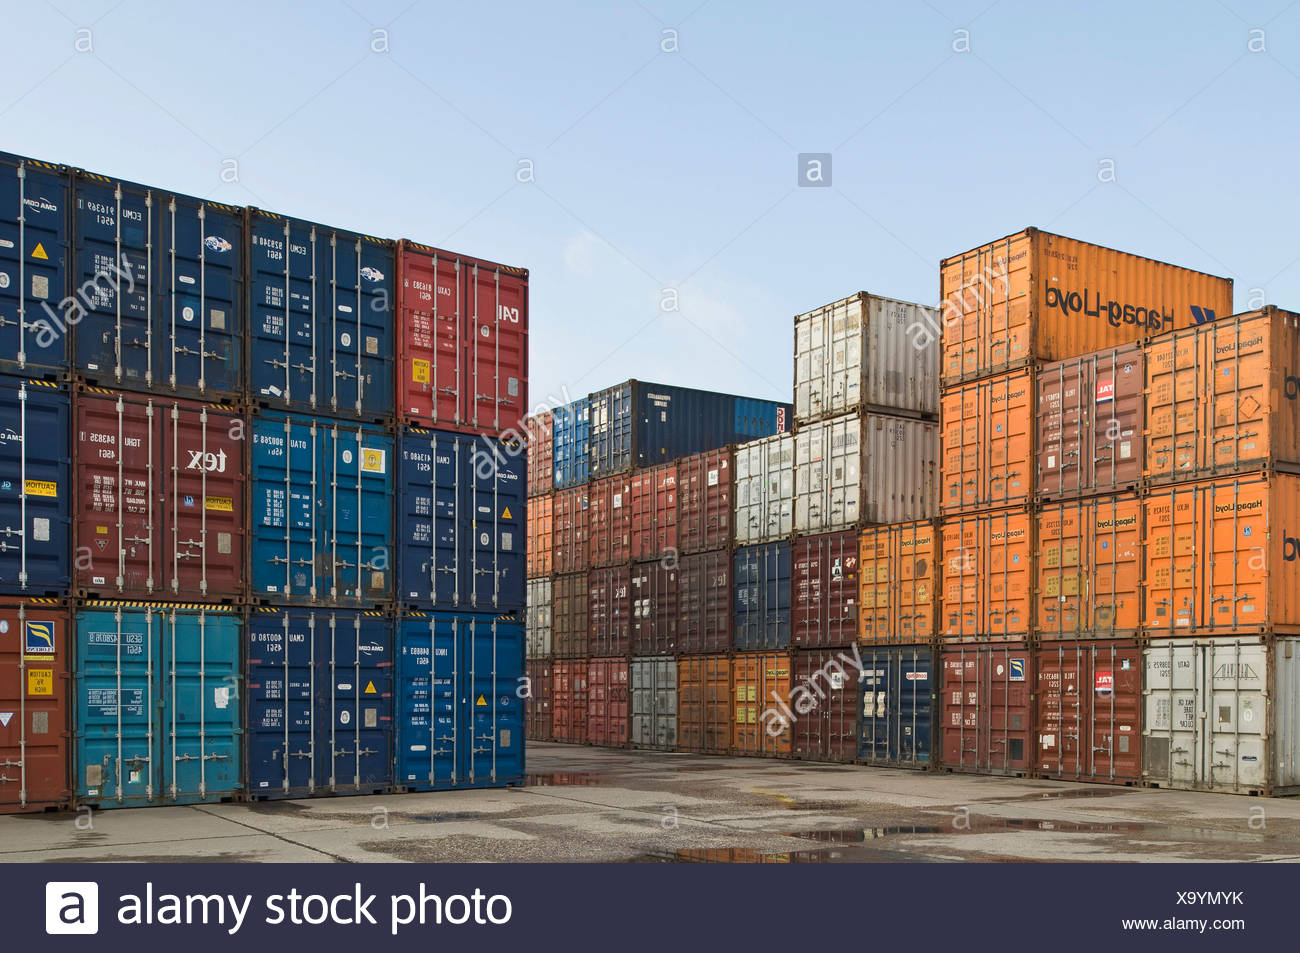 Bonn Container Terminal, overlooking stacked oversea containers in the depot, Bonn harbour, North Rhine-Westphalia, Germany, Eu Stock Photo